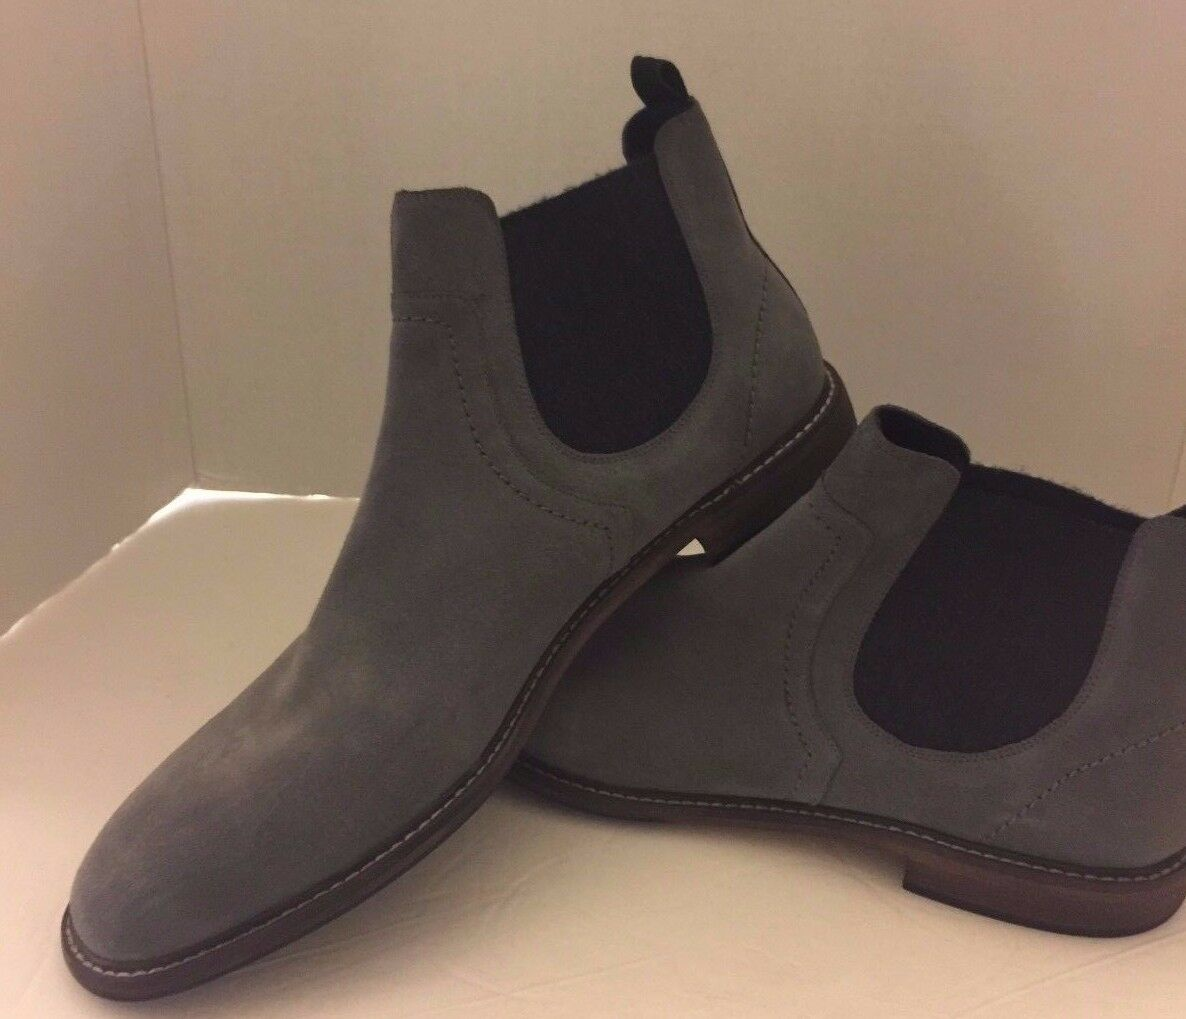 New Rail Men Mid Cut Slip On Ankle Boots Leather 47 Gray USA 12.5 Blue Ocean